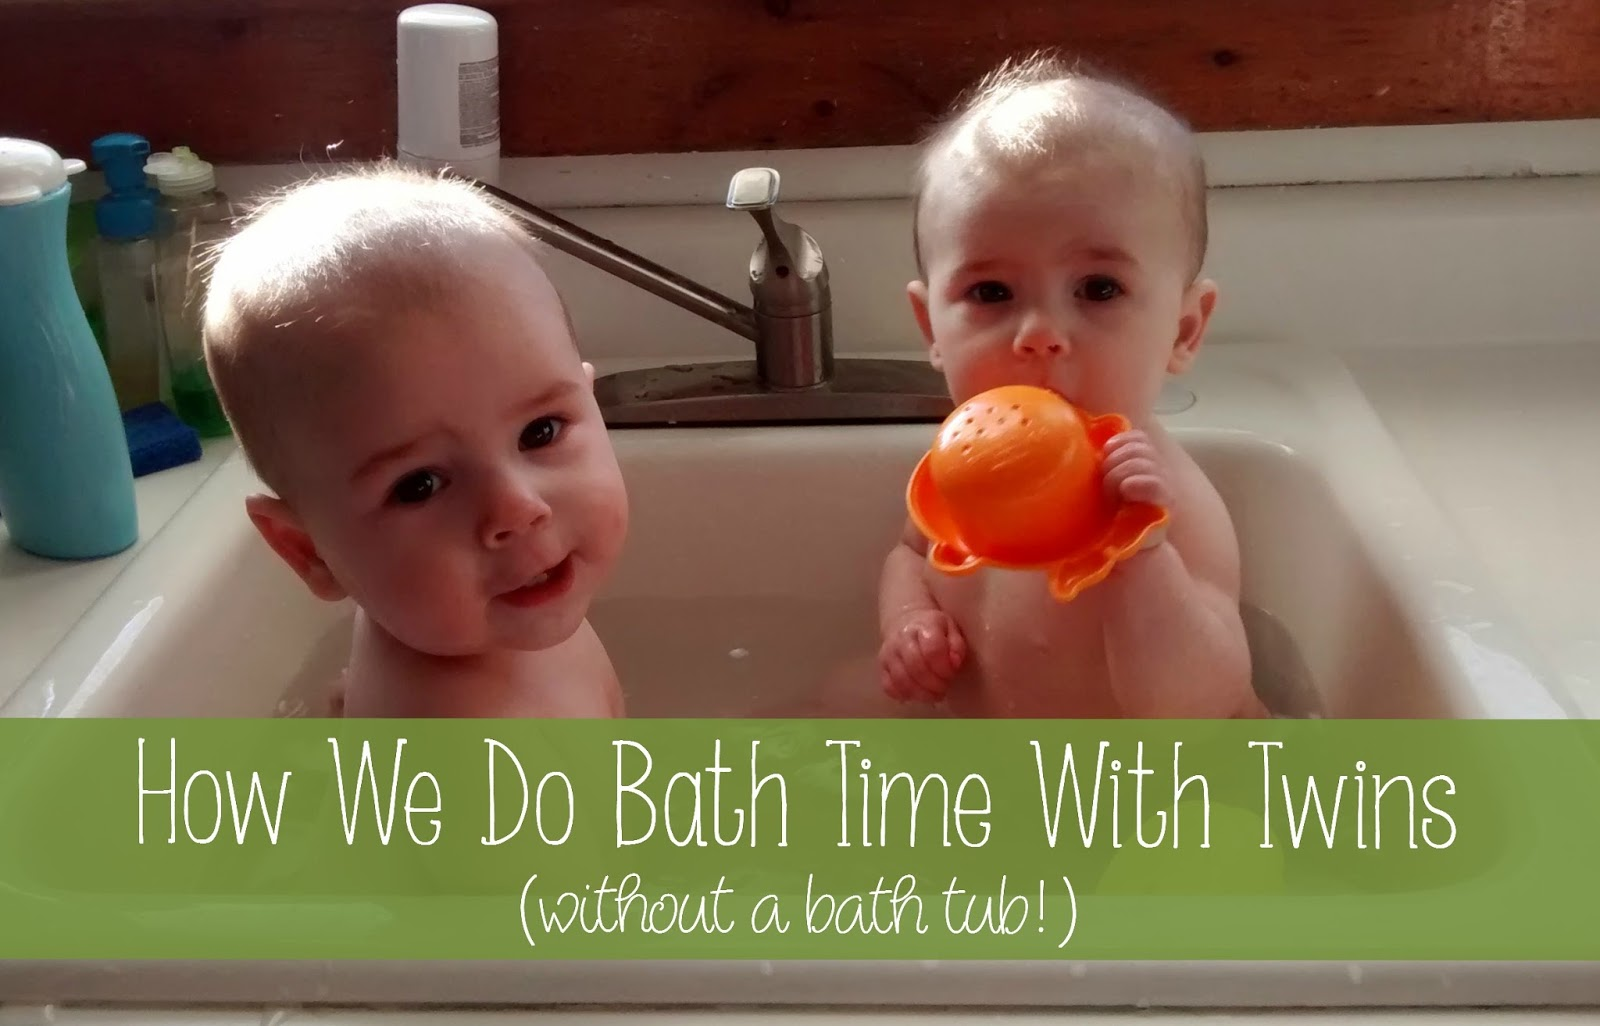 How We Do Bath Time With Twins (without a bath tub!)